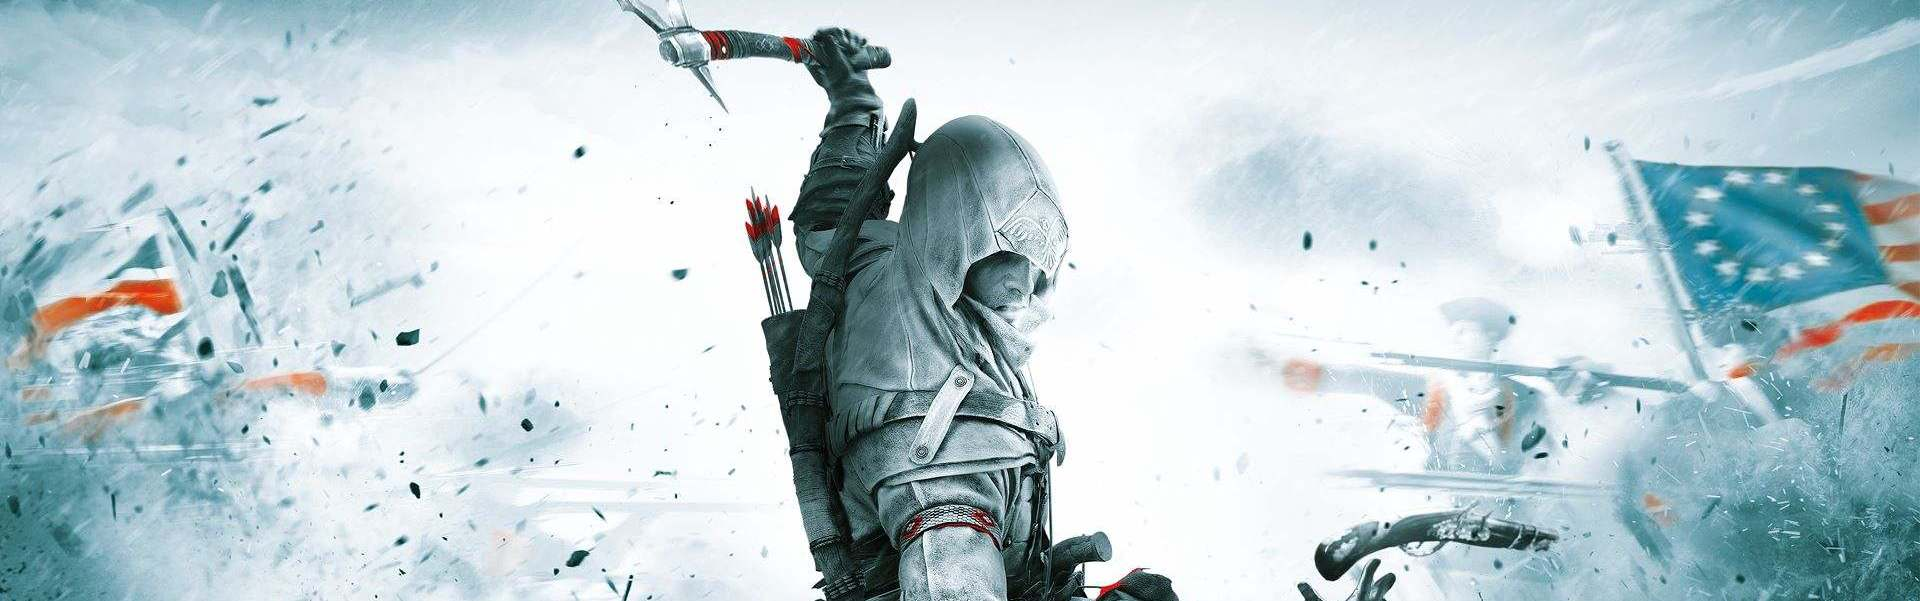 Assassin's Creed III Uplay Key EUROPE